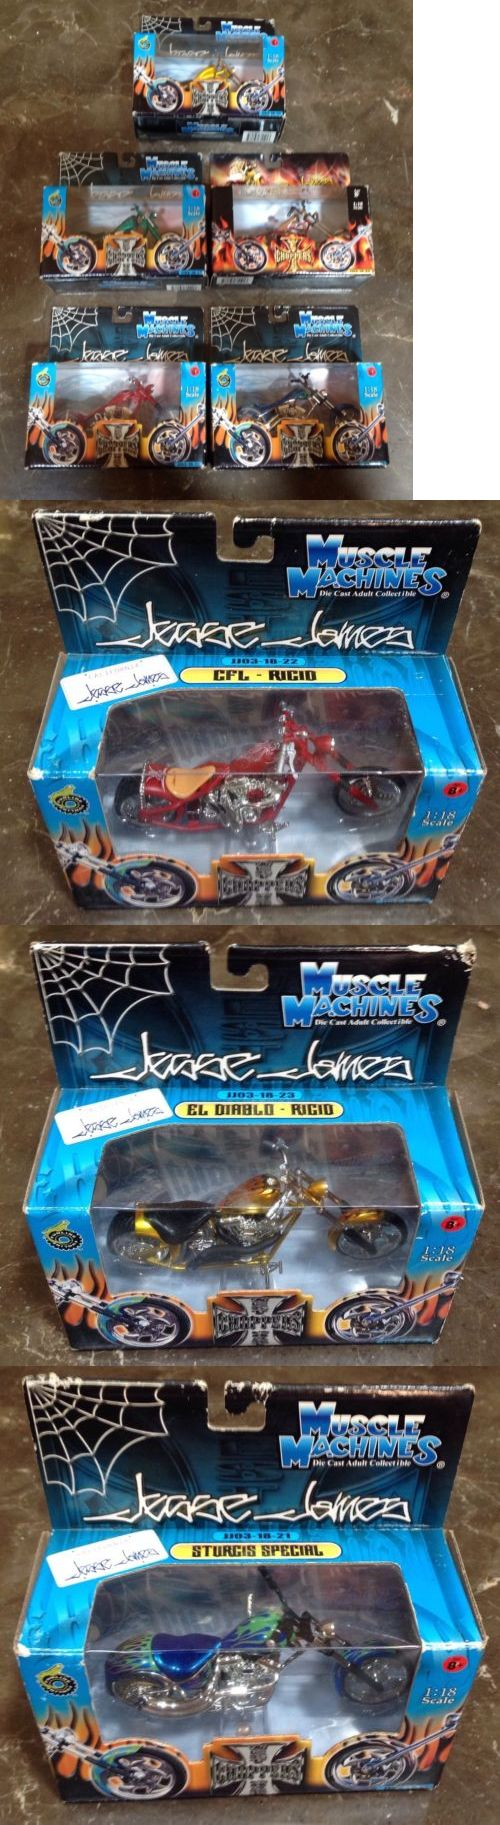 Contemporary Manufacture 45348: 5 Die Cast Muscle Machines West Coast Choppers Jesse James Motorcycles -> BUY IT NOW ONLY: $100 on eBay!